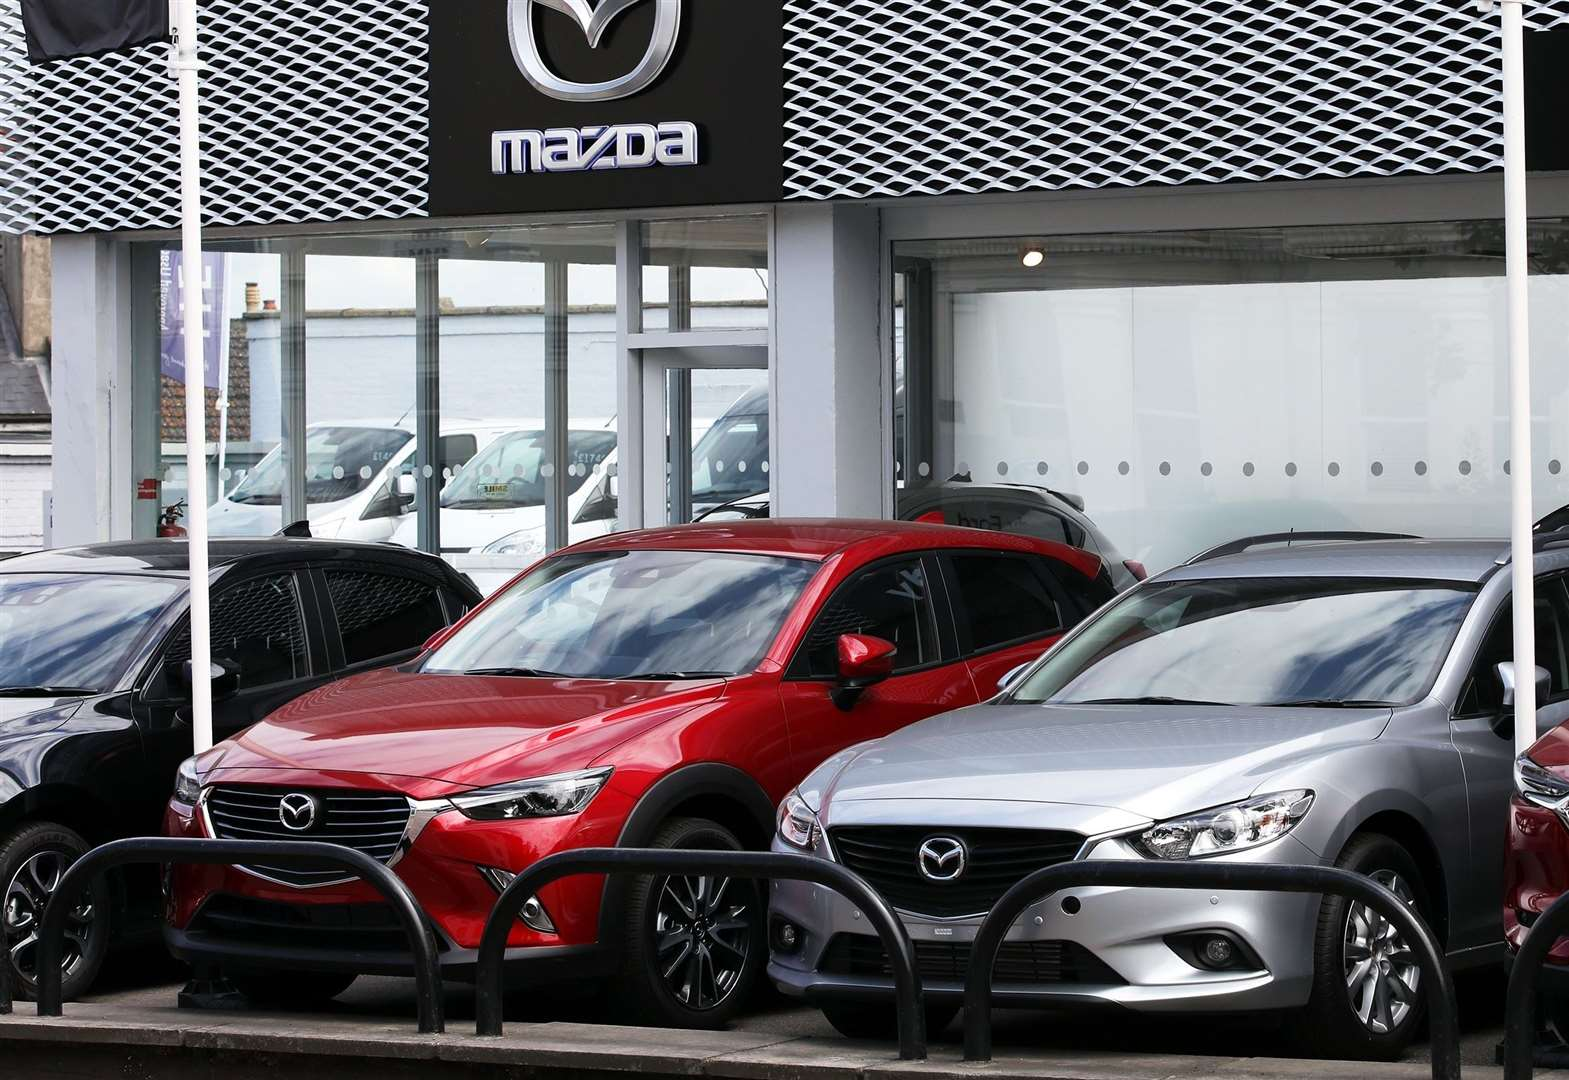 Motor dealership increases following takeover